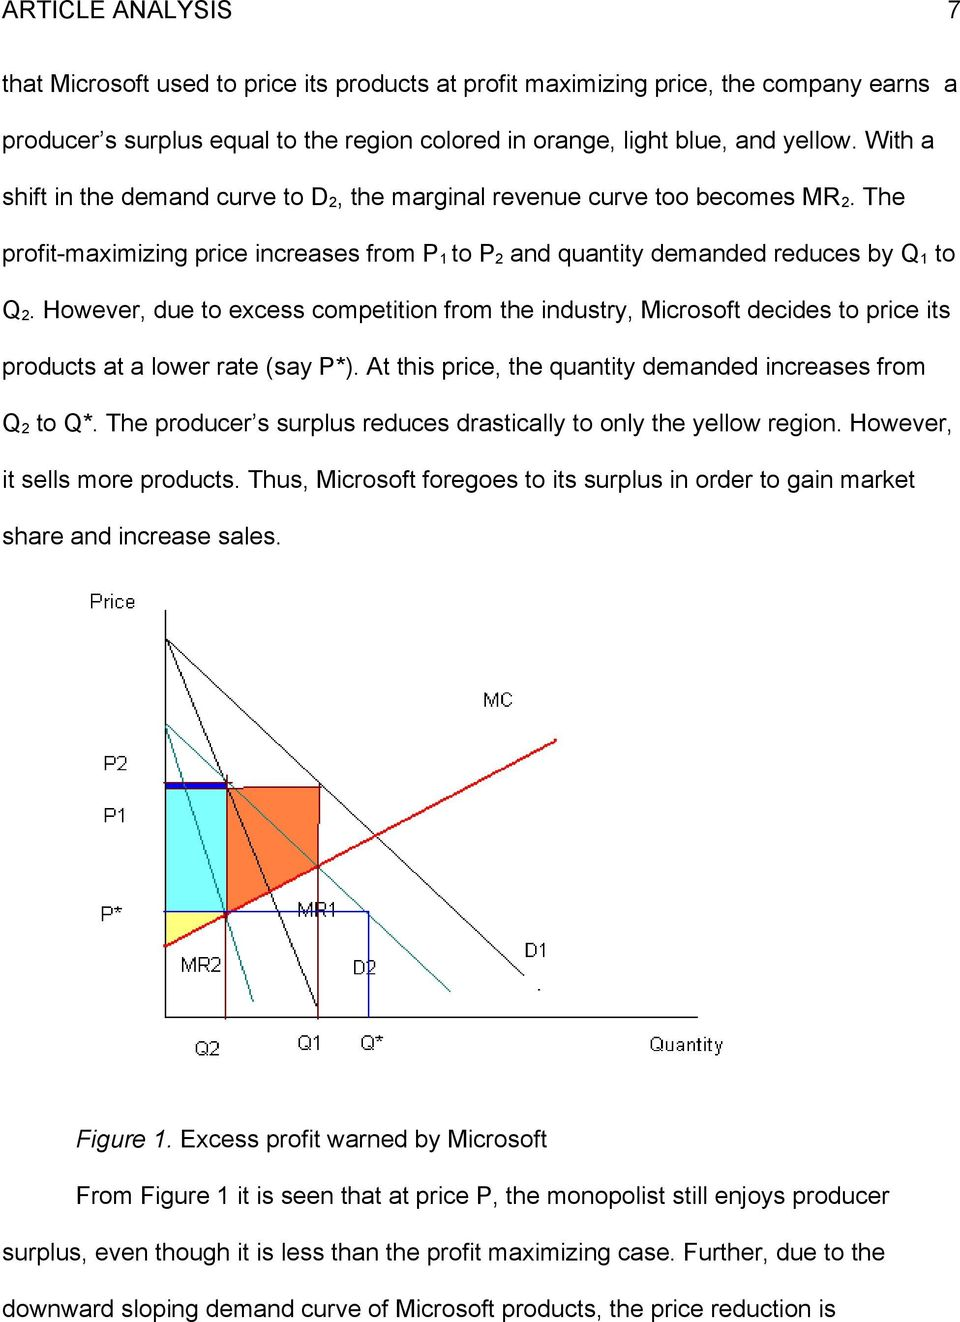 However, due to excess competition from the industry, Microsoft decides to price its products at a lower rate (say P*). At this price, the quantity demanded increases from Q 2 to Q*.